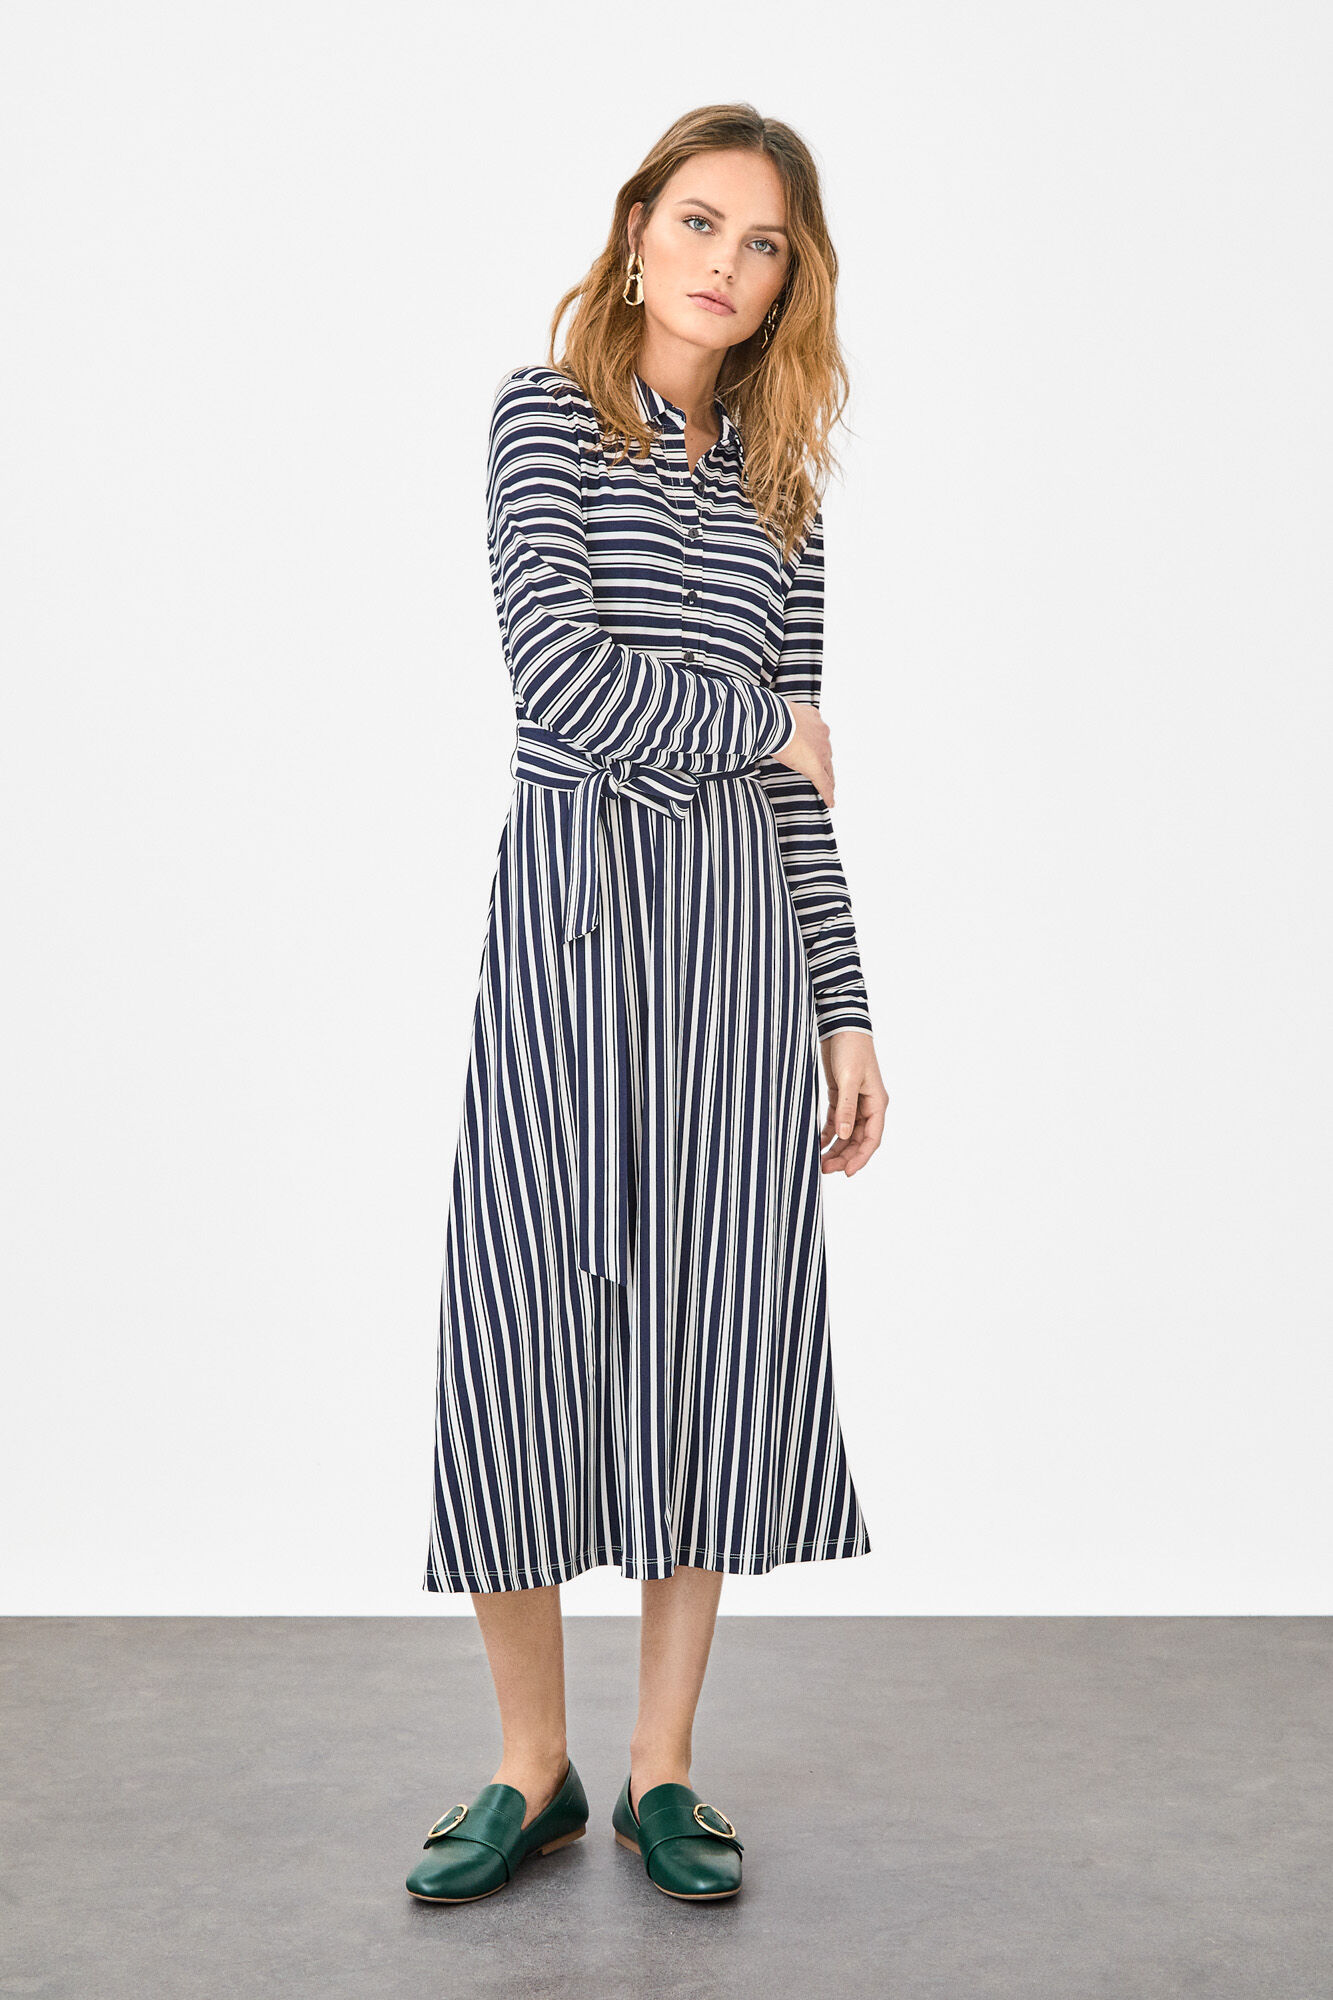 839a1e01291 Stripe-printed dress